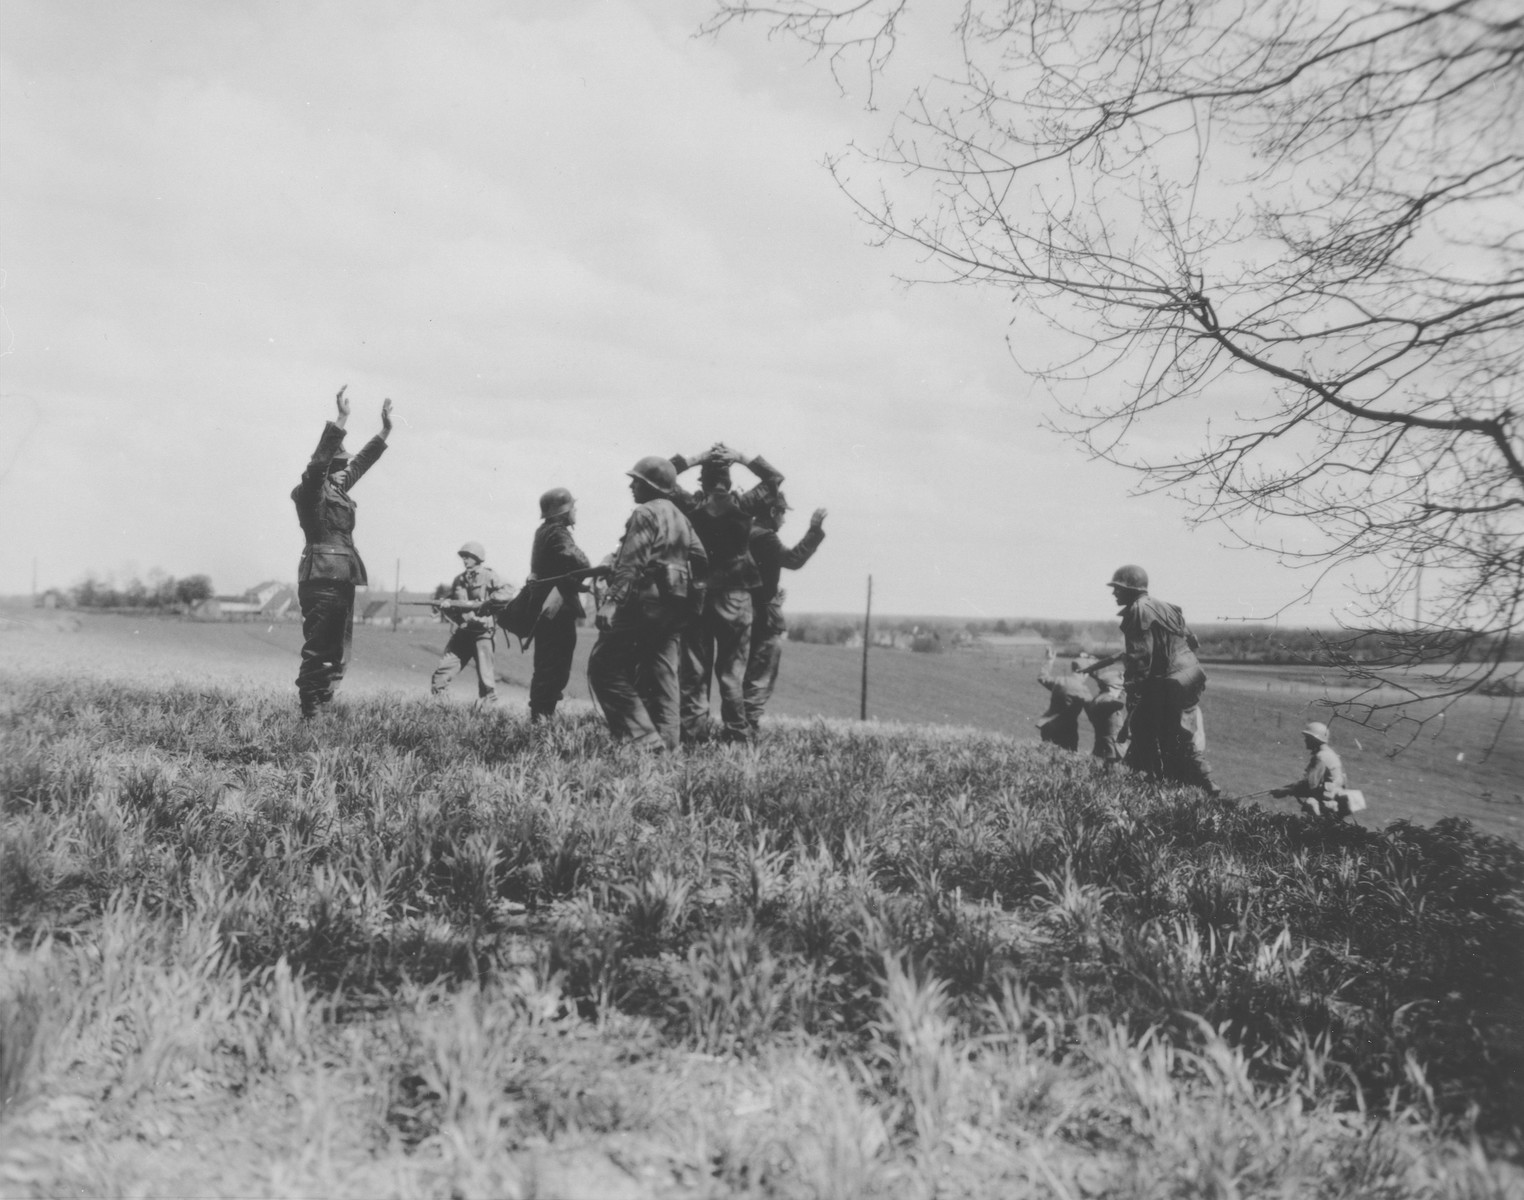 American soldiers of the 42nd Rainbow division capture fleeing SS men near Dachau.